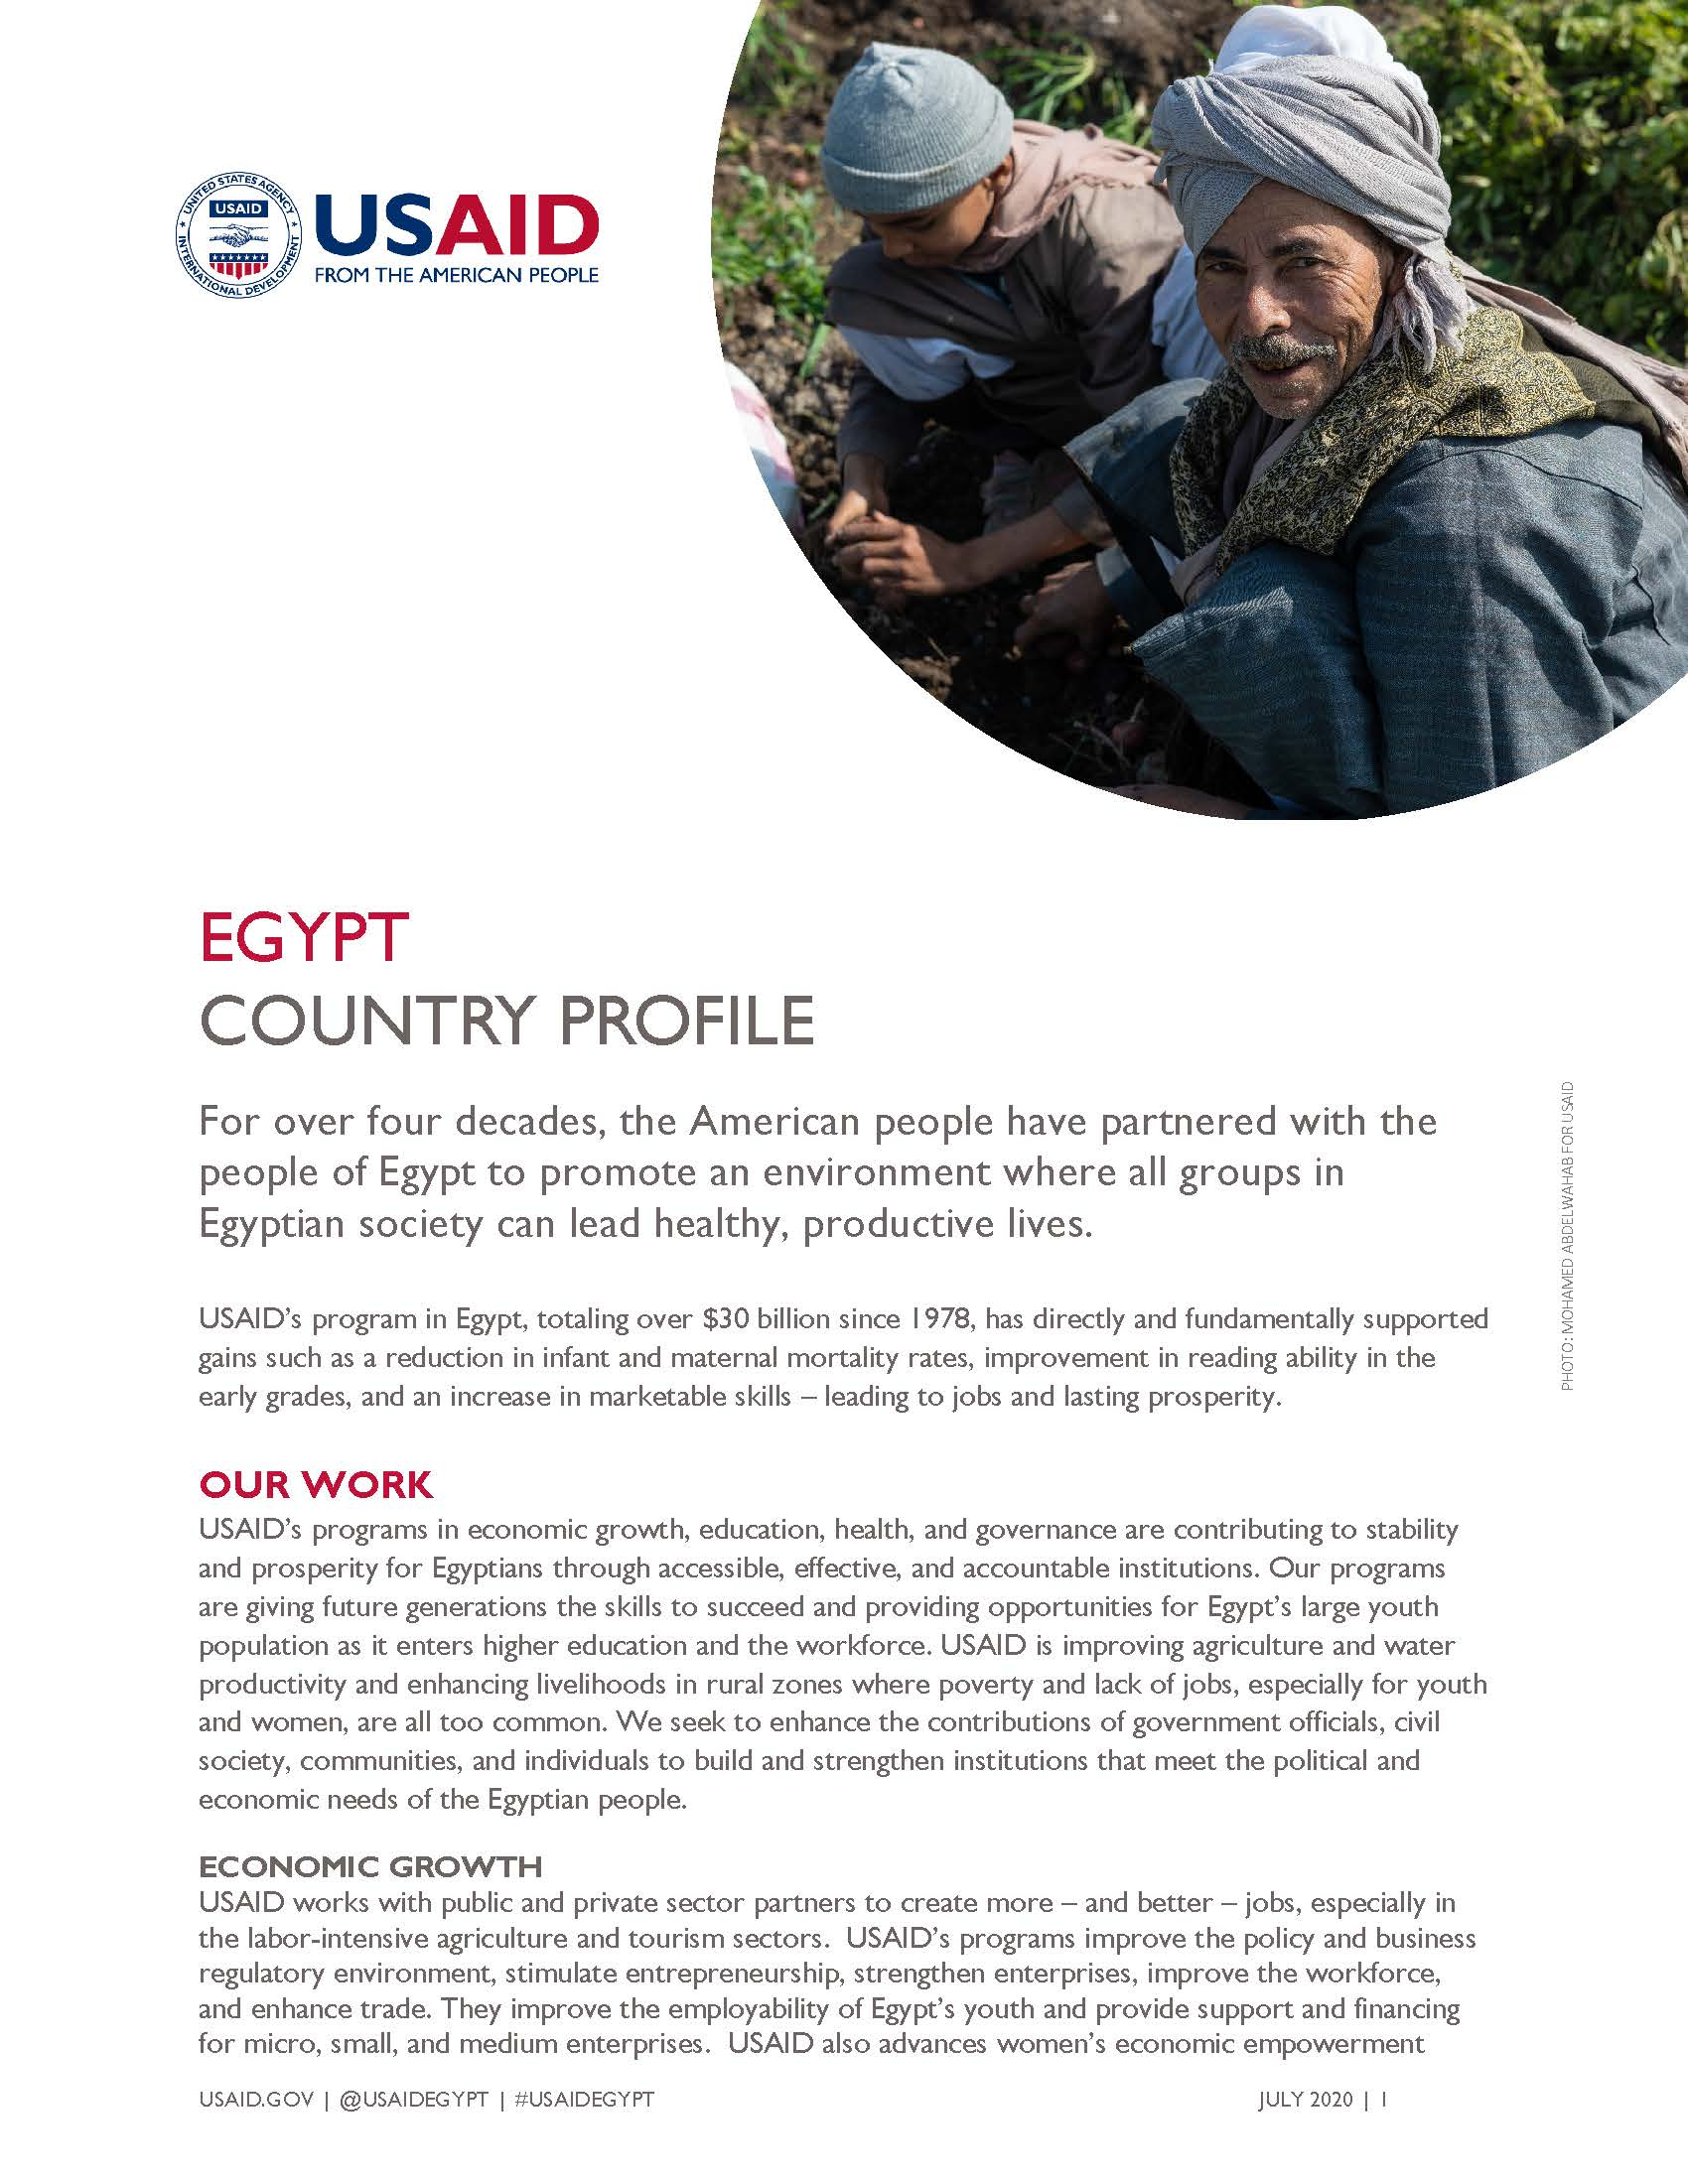 USAID/Egypt Fact Sheet: Country Profile